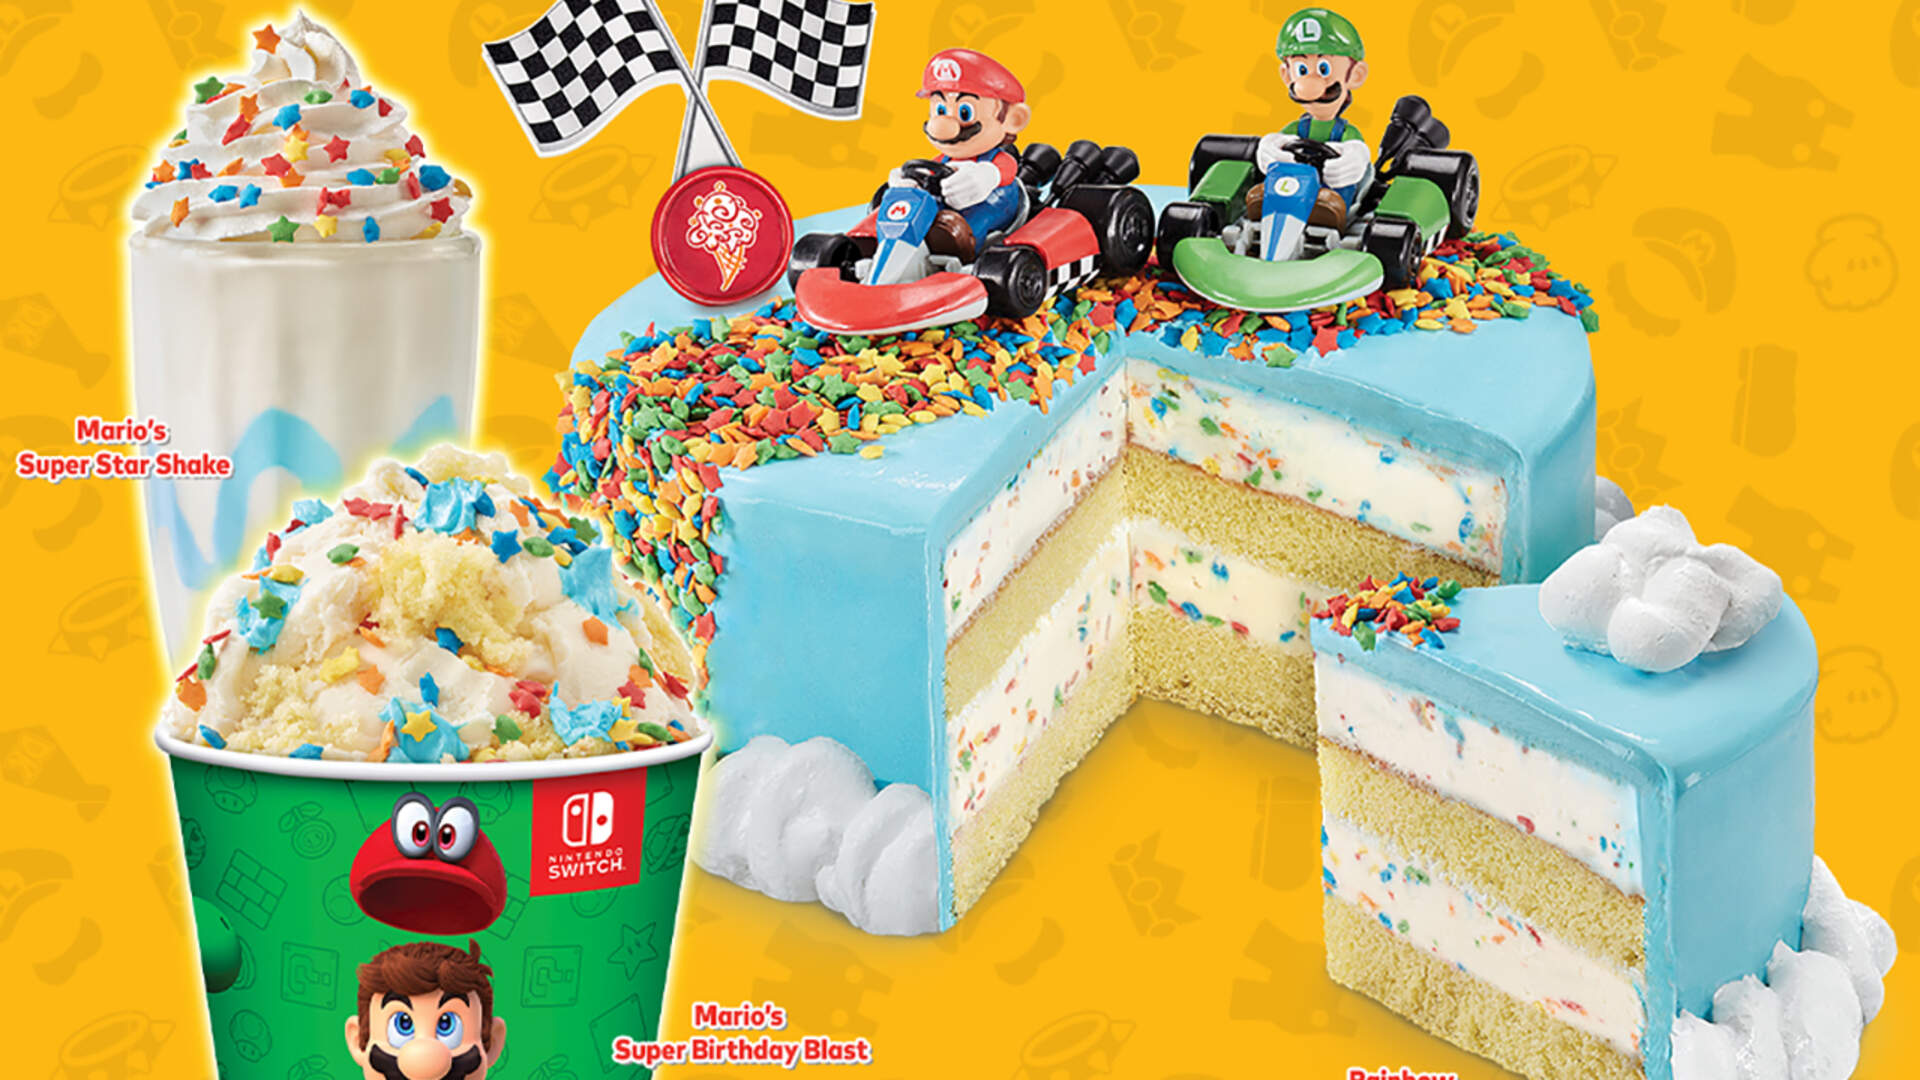 Coldstone's Super Mario Bros. Anniversary Goods Sound Too Sweet For Humans to Consume